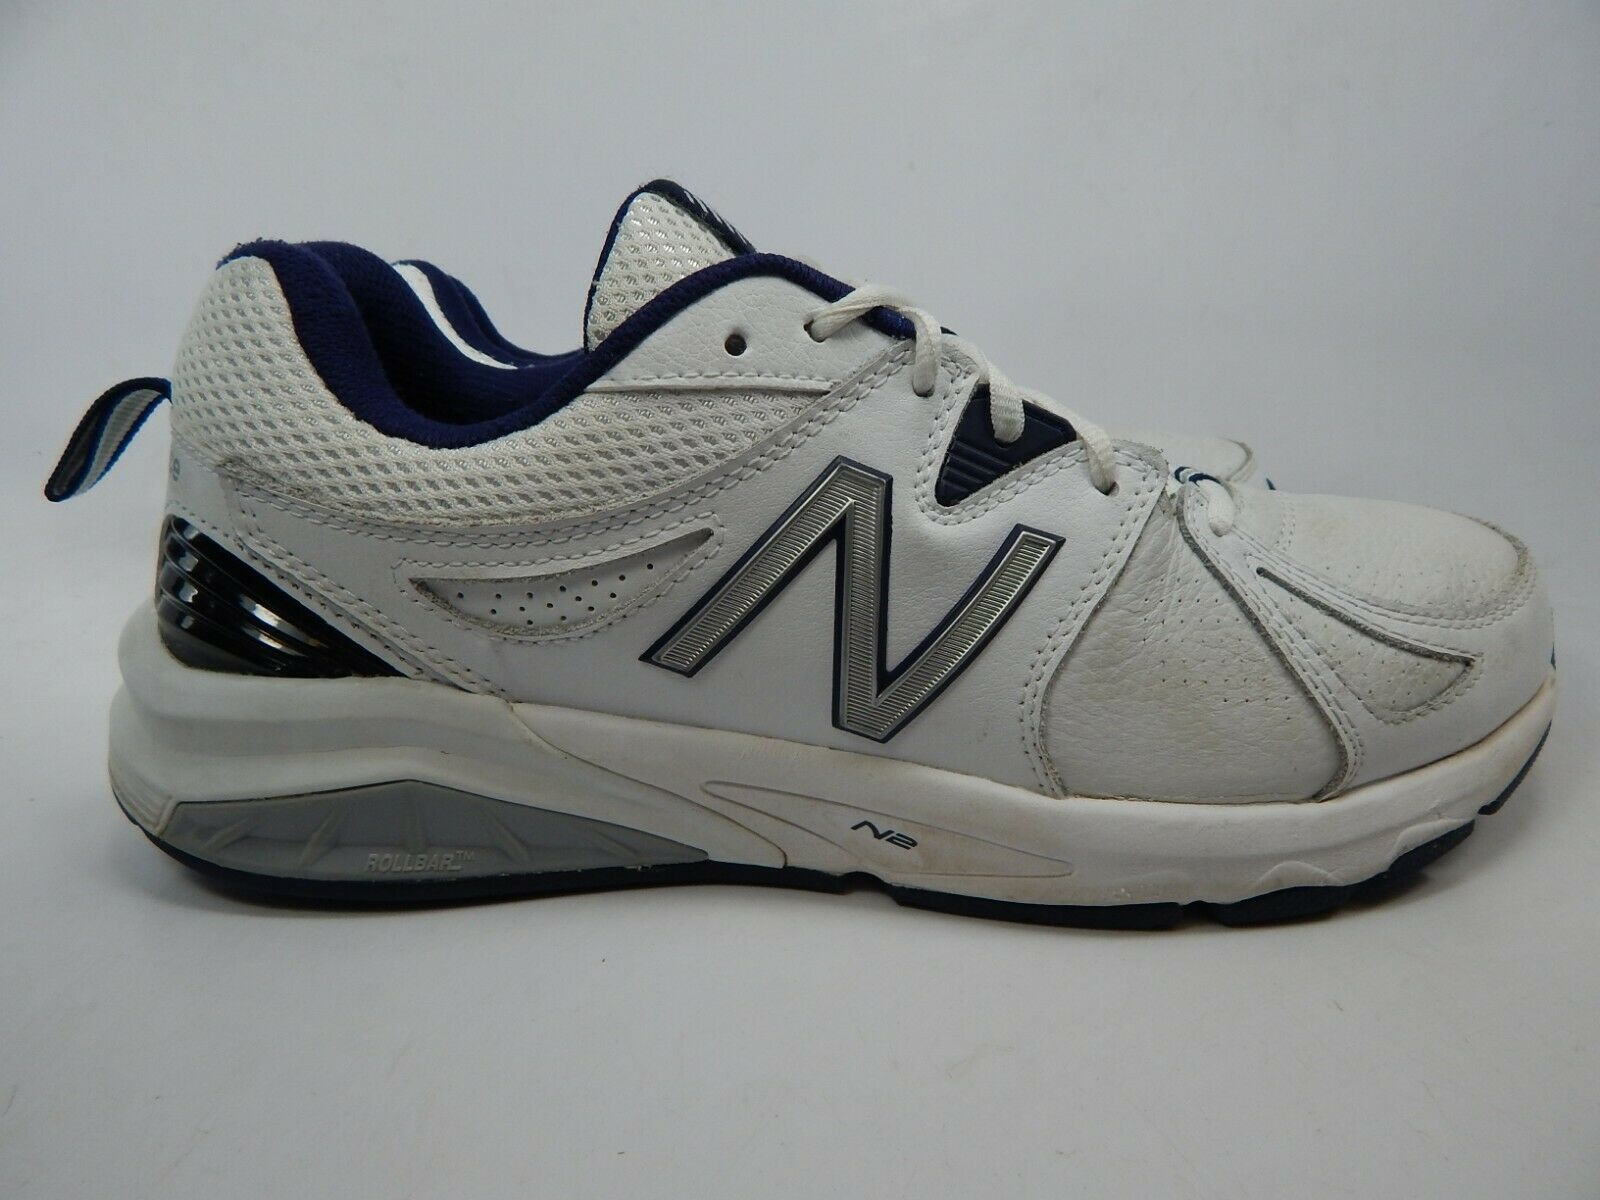 New Balance 857 v2 Size US 10 M (D) EU 44 Men's Training shoes White MX857WN2